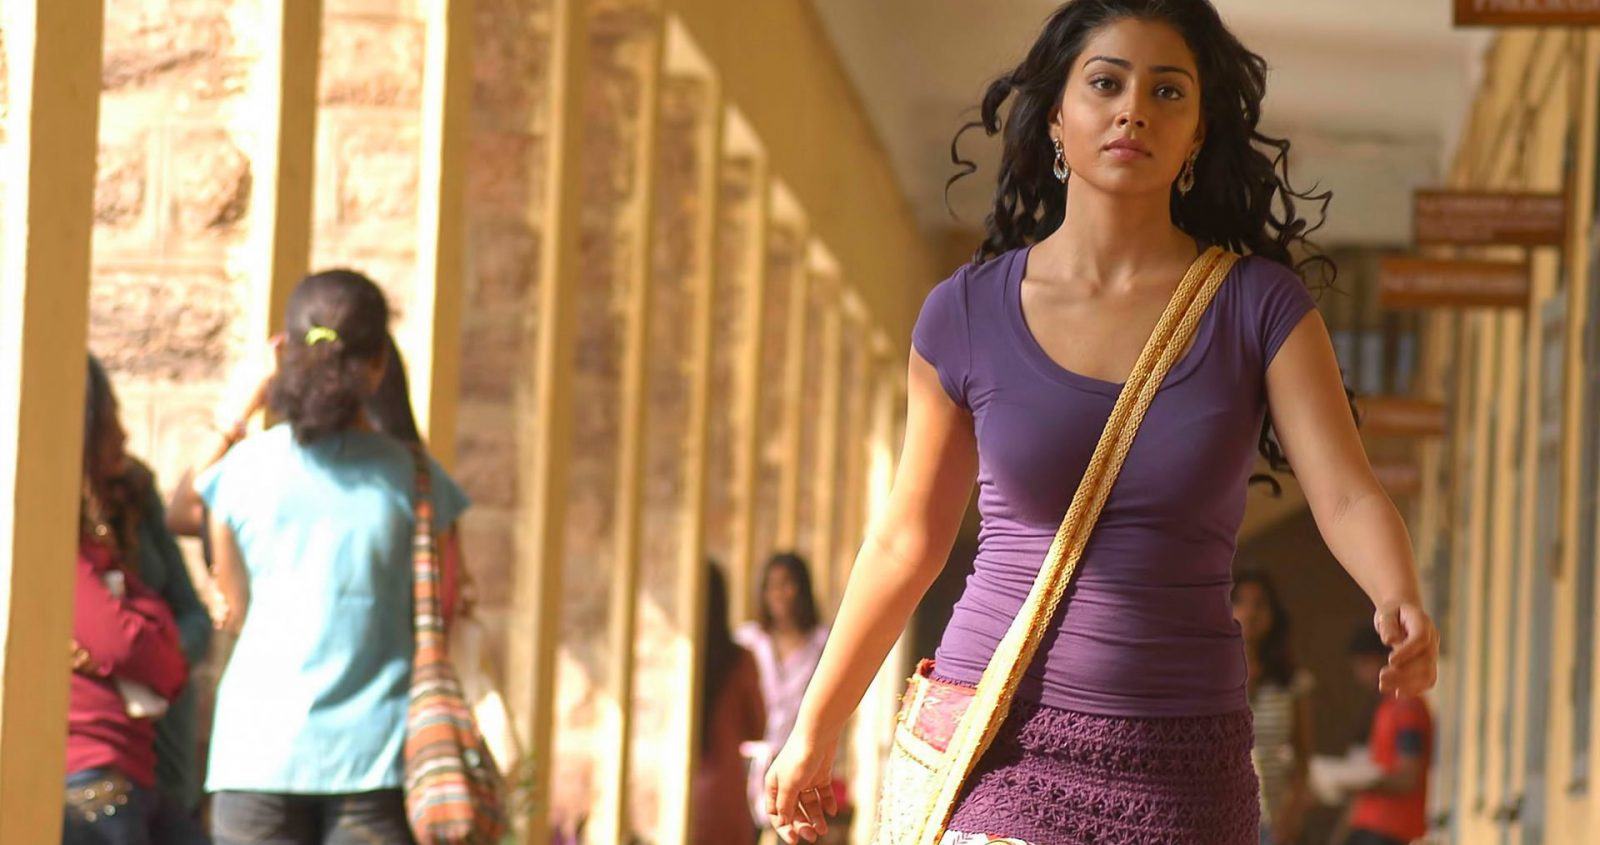 Shriya Saran hot in tight fit top from a movie